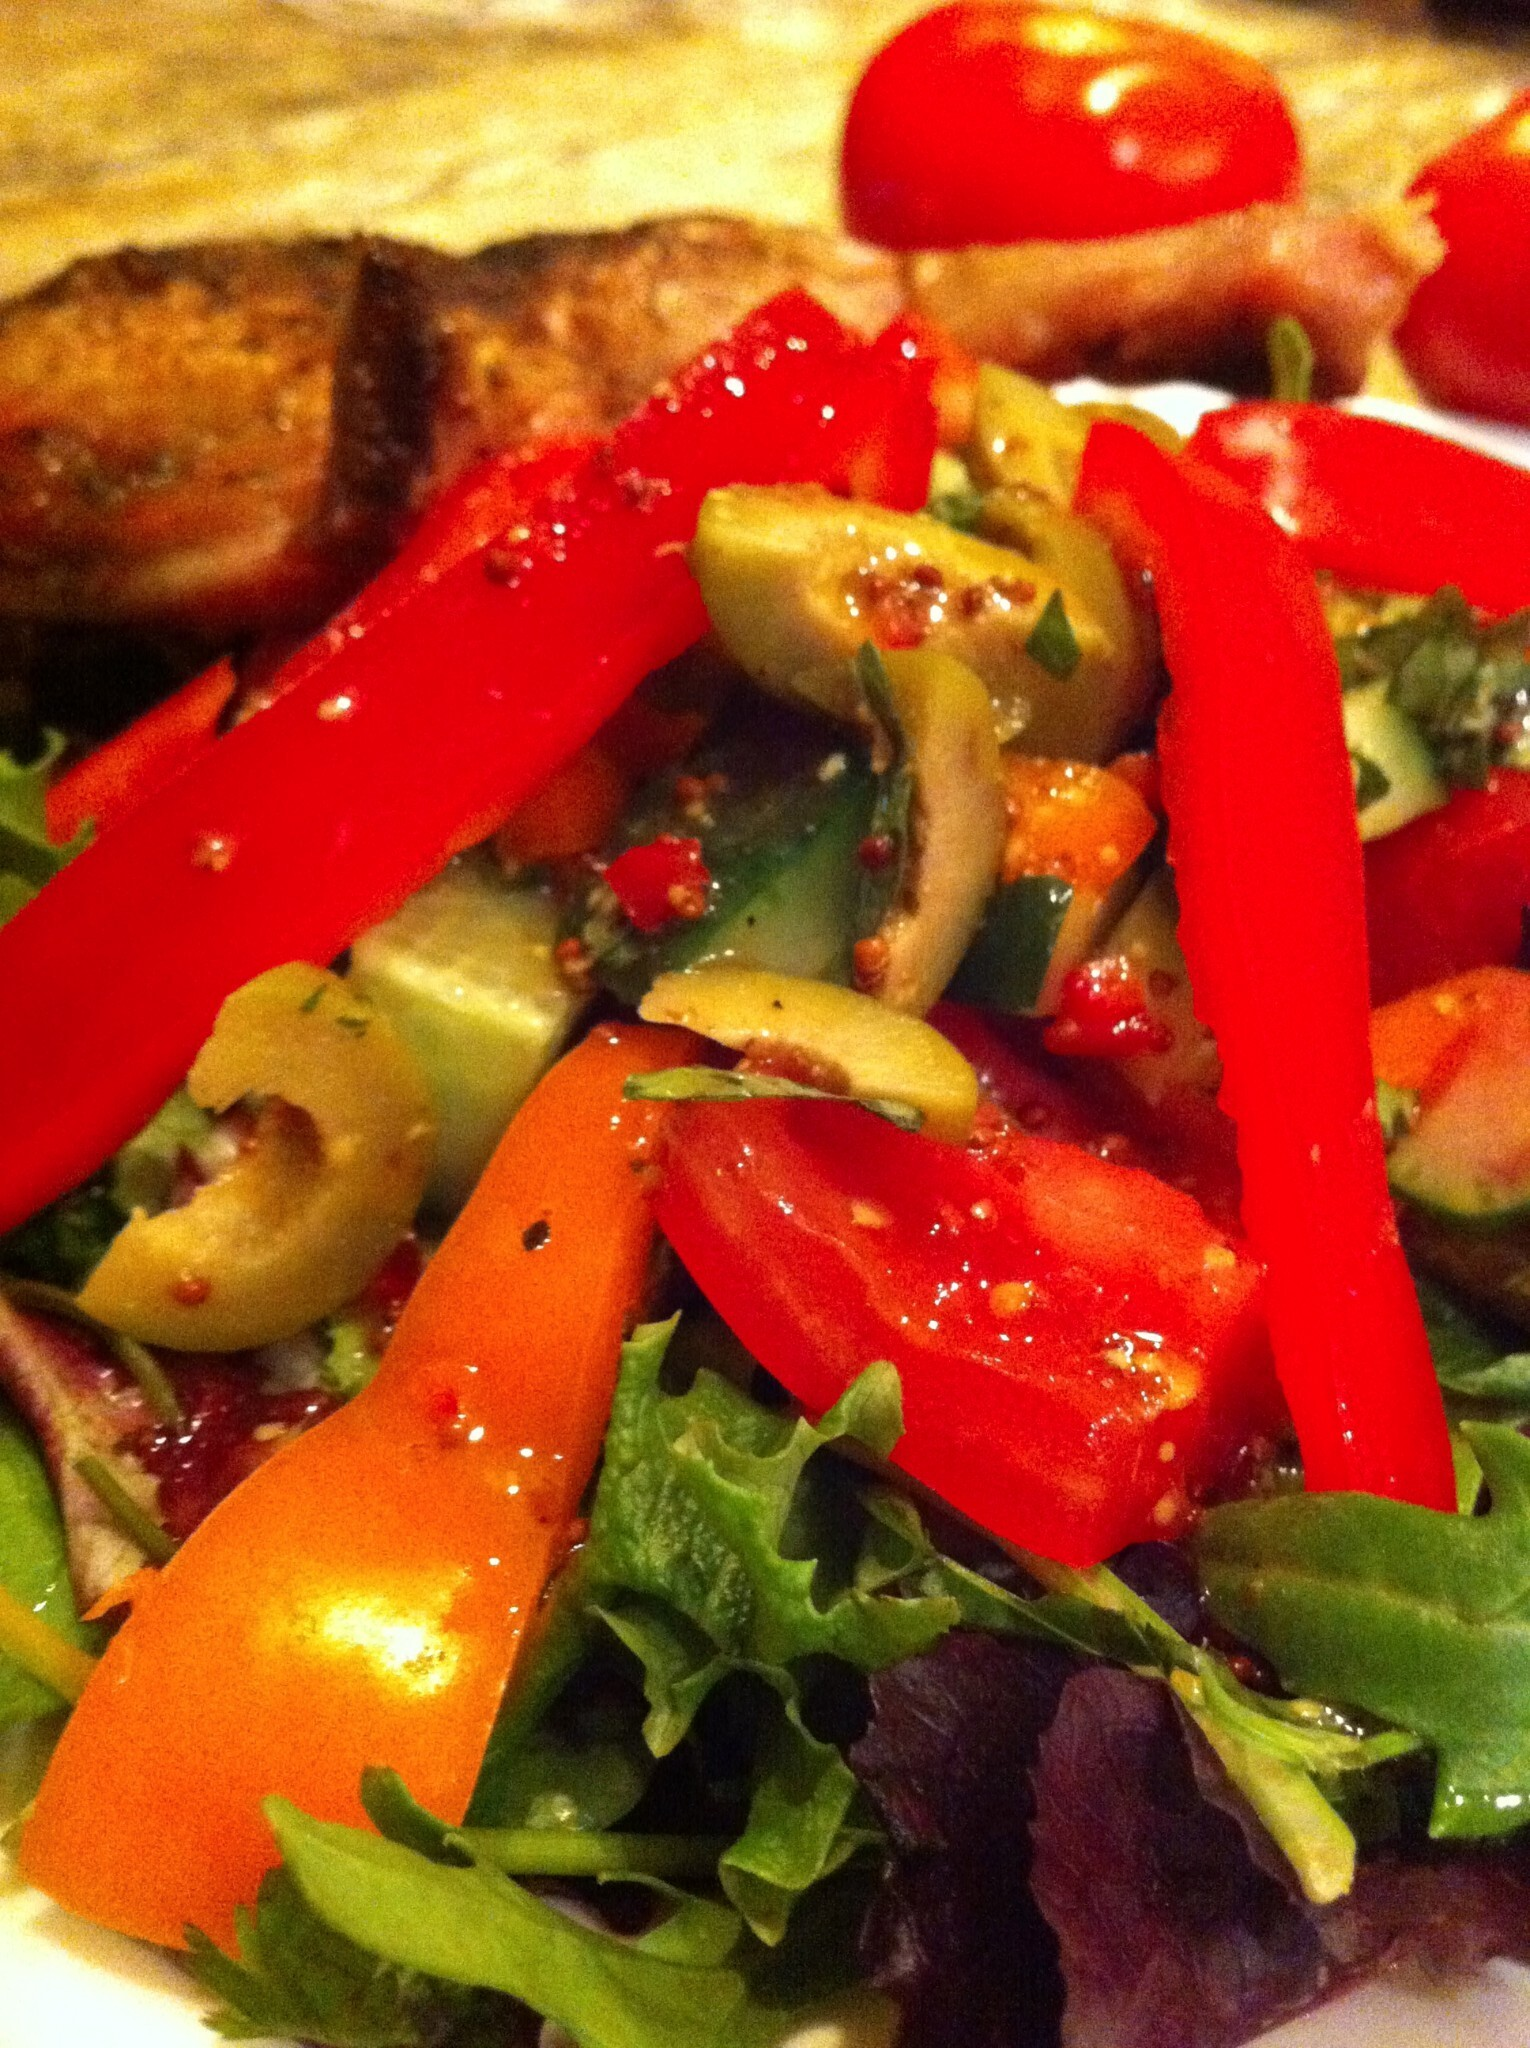 Easy to Make Individual Salad with Chilli Dijon Salad Dressing